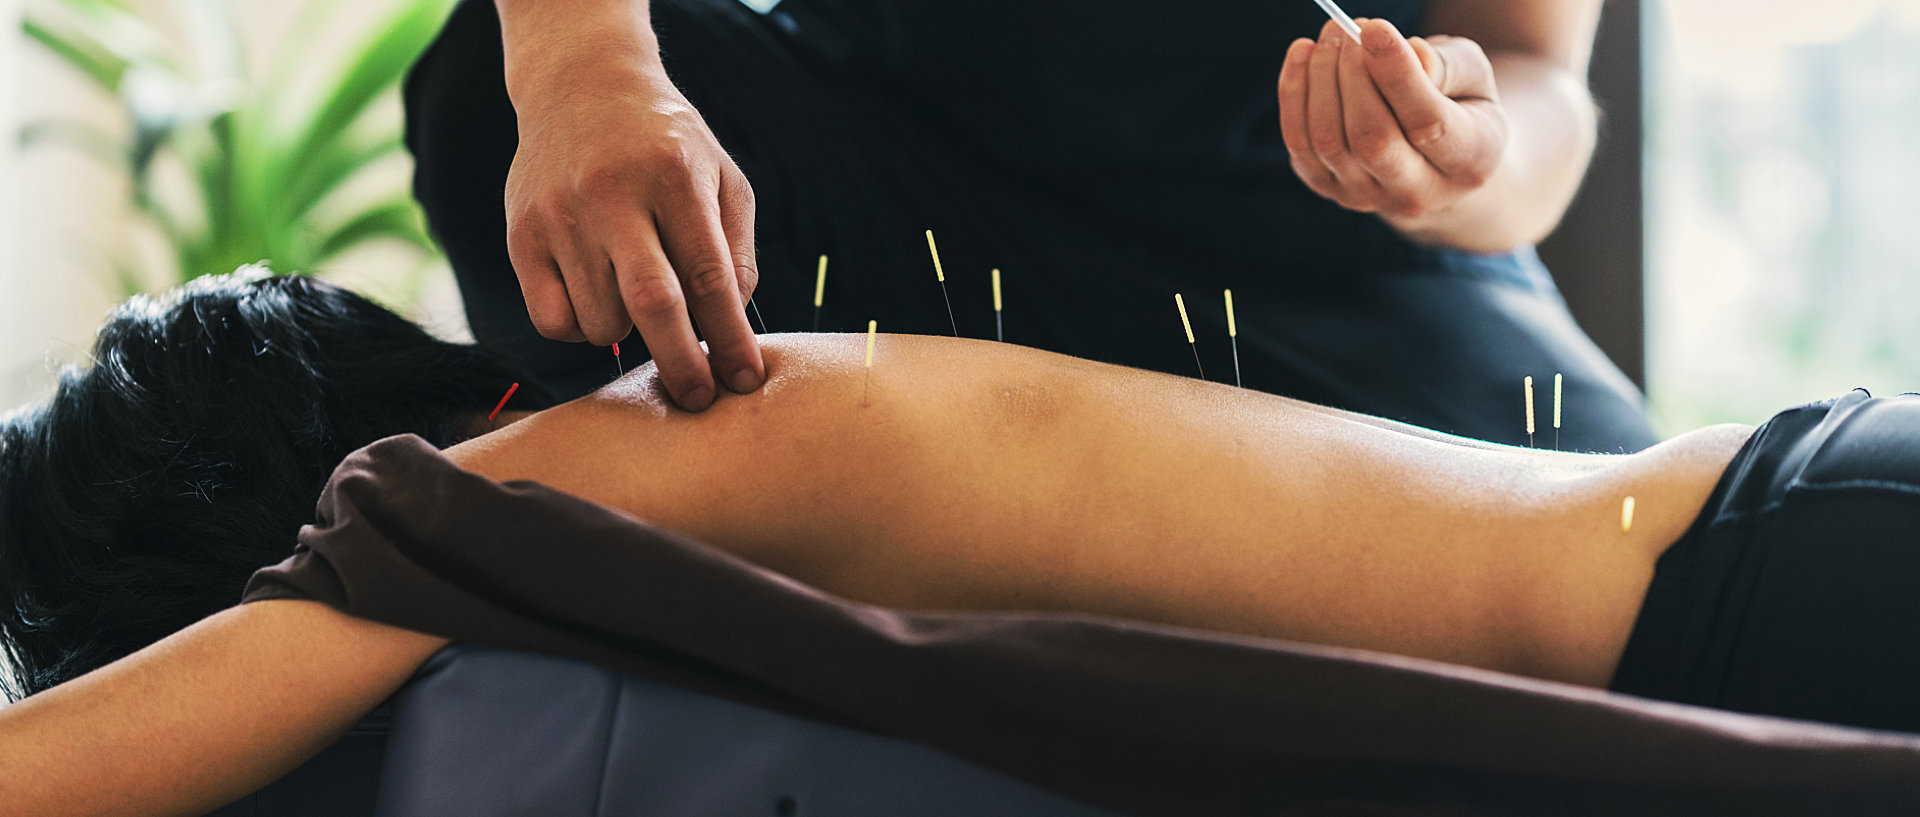 acupuncture needles being place at the back